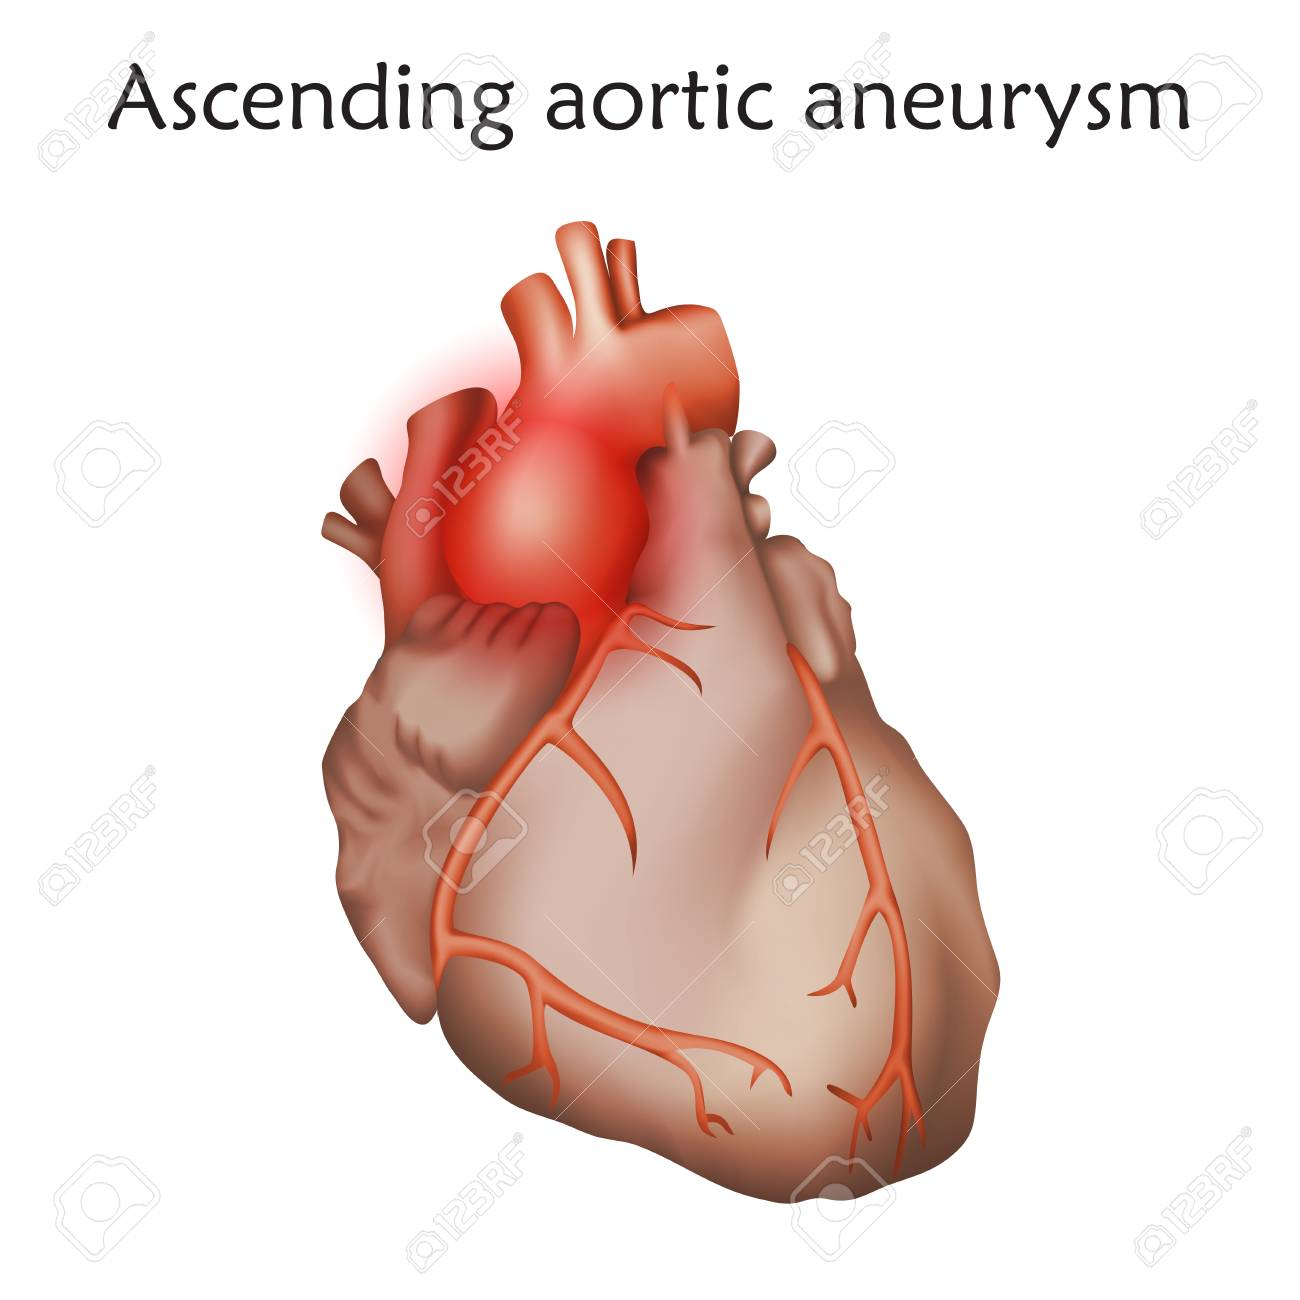 Ascending Aortic Aneurysm With Damaged Heart Muscle For Anatomy ...